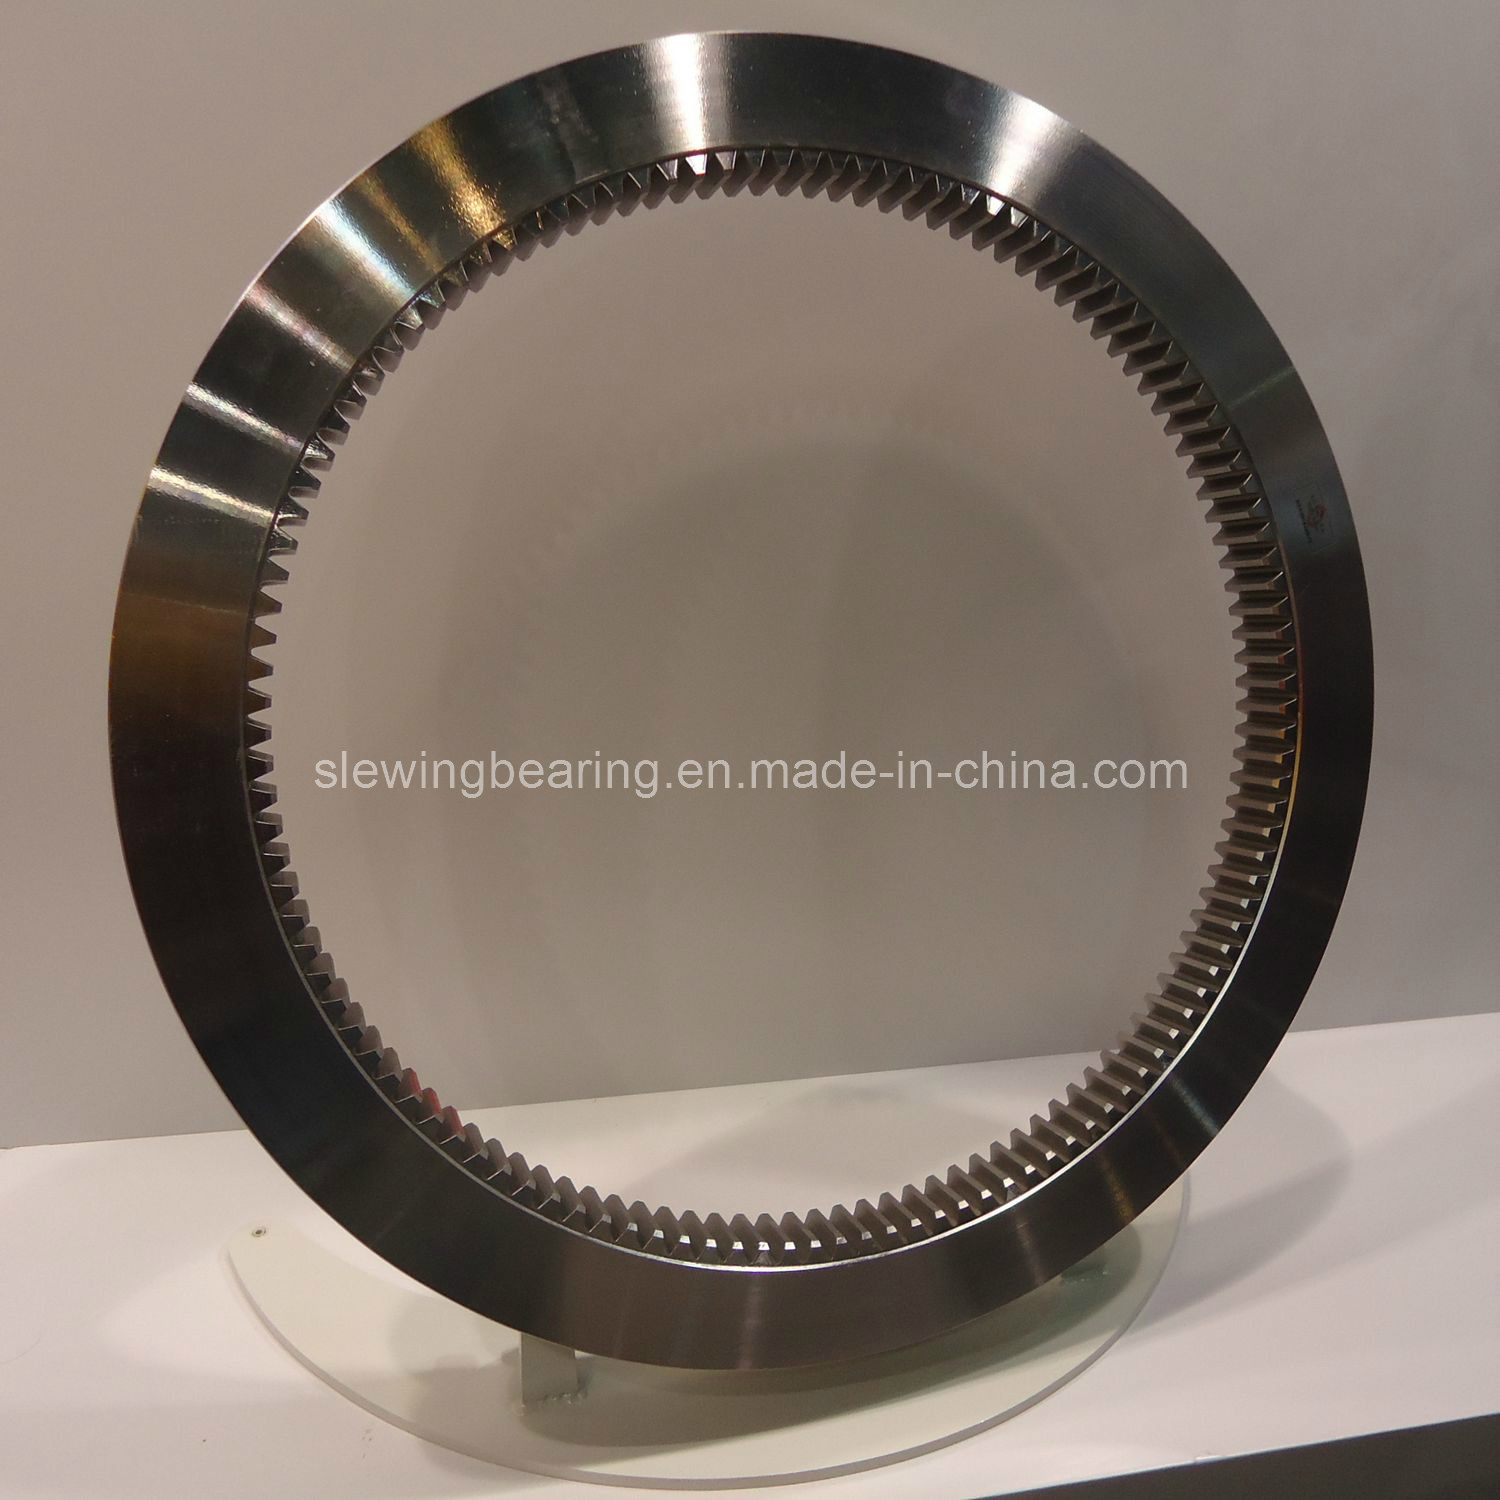 SKF Light Type Slewing Bearing (231.20.414)